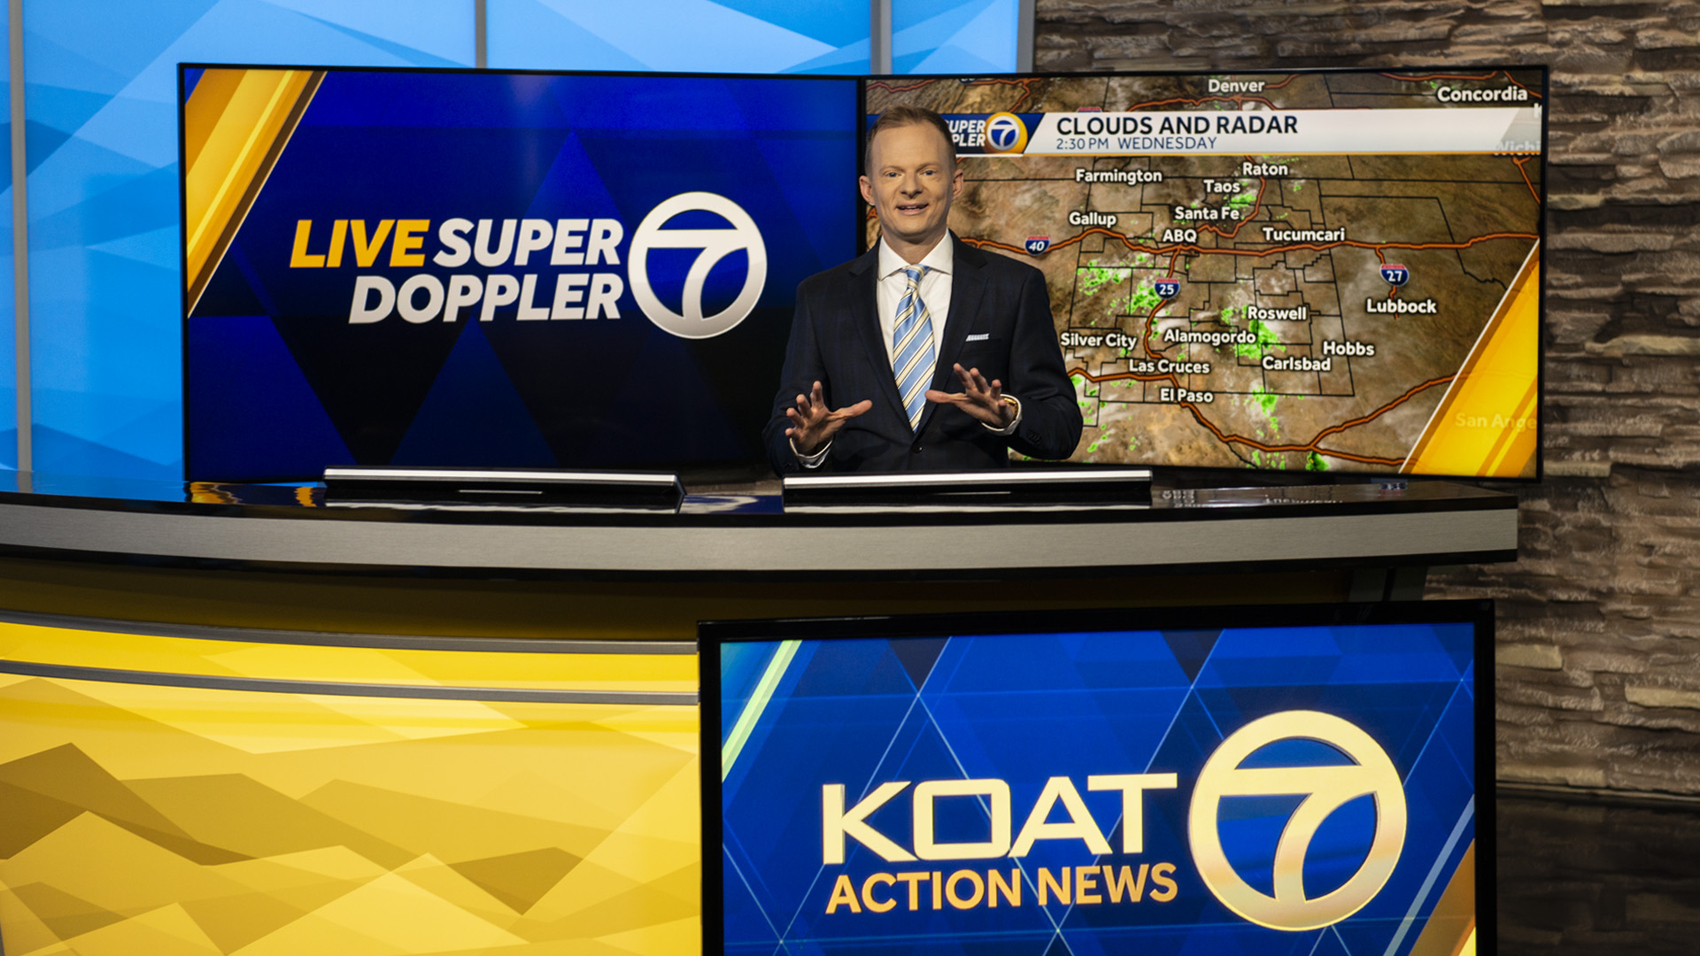 ncs_KOAT-TV-Studio-Devlin_00004